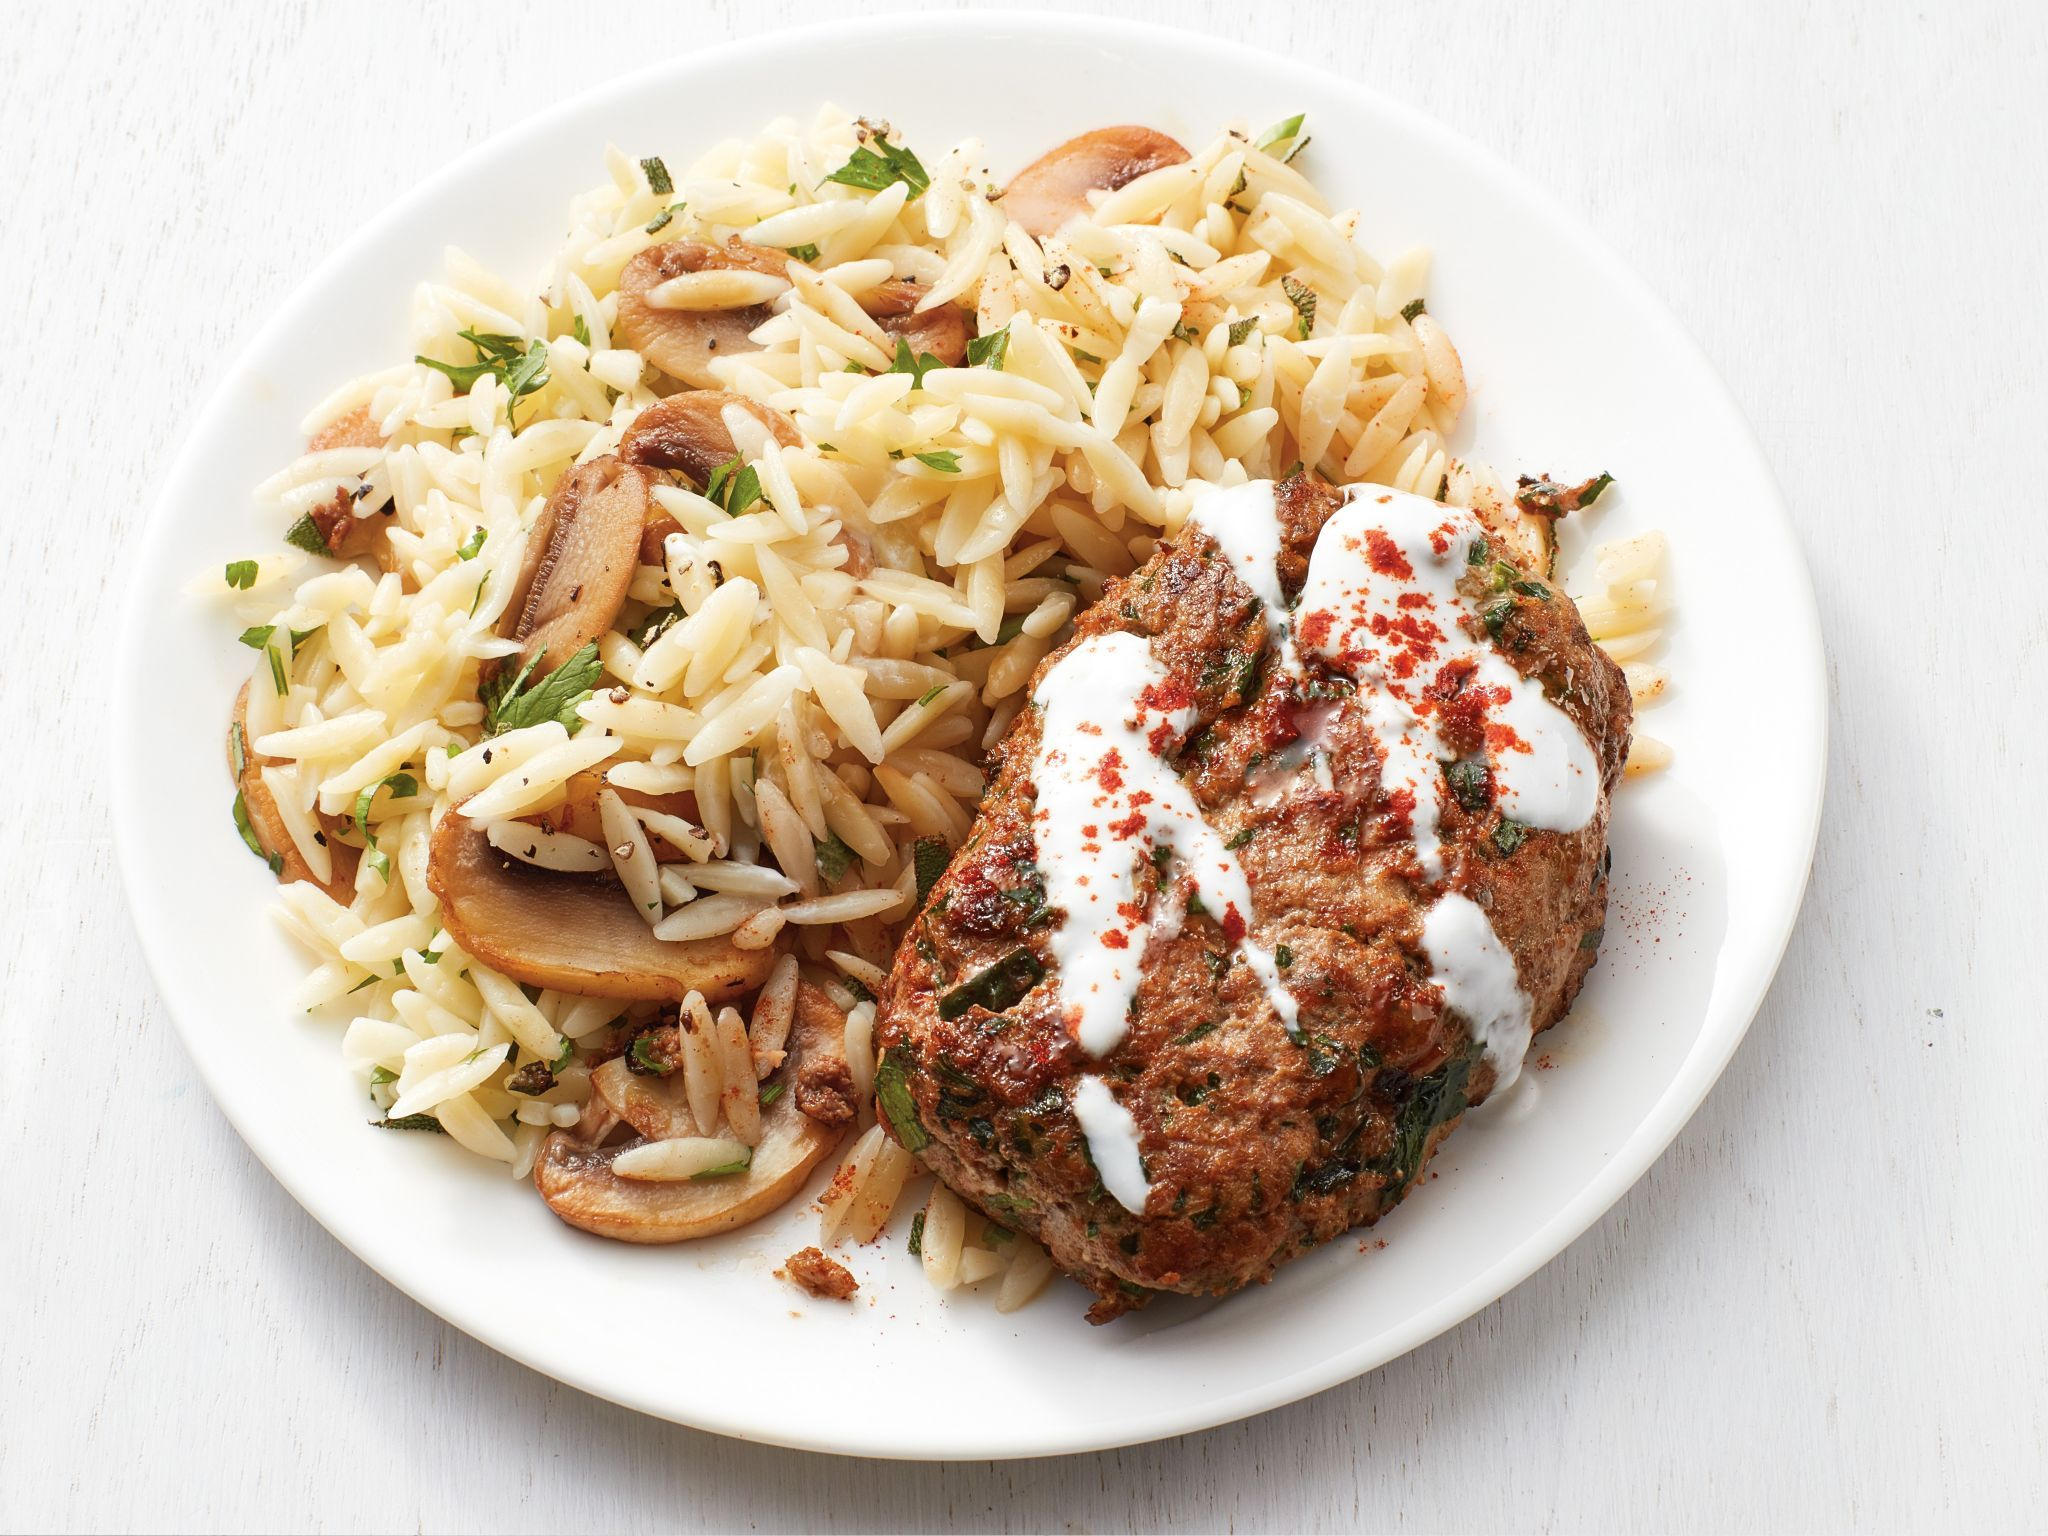 Mini meatloaves with mushroom herb orzo recipe orzo recipes mini meatloaves with mushroom herb orzo recipe orzo recipes orzo and herbs forumfinder Images